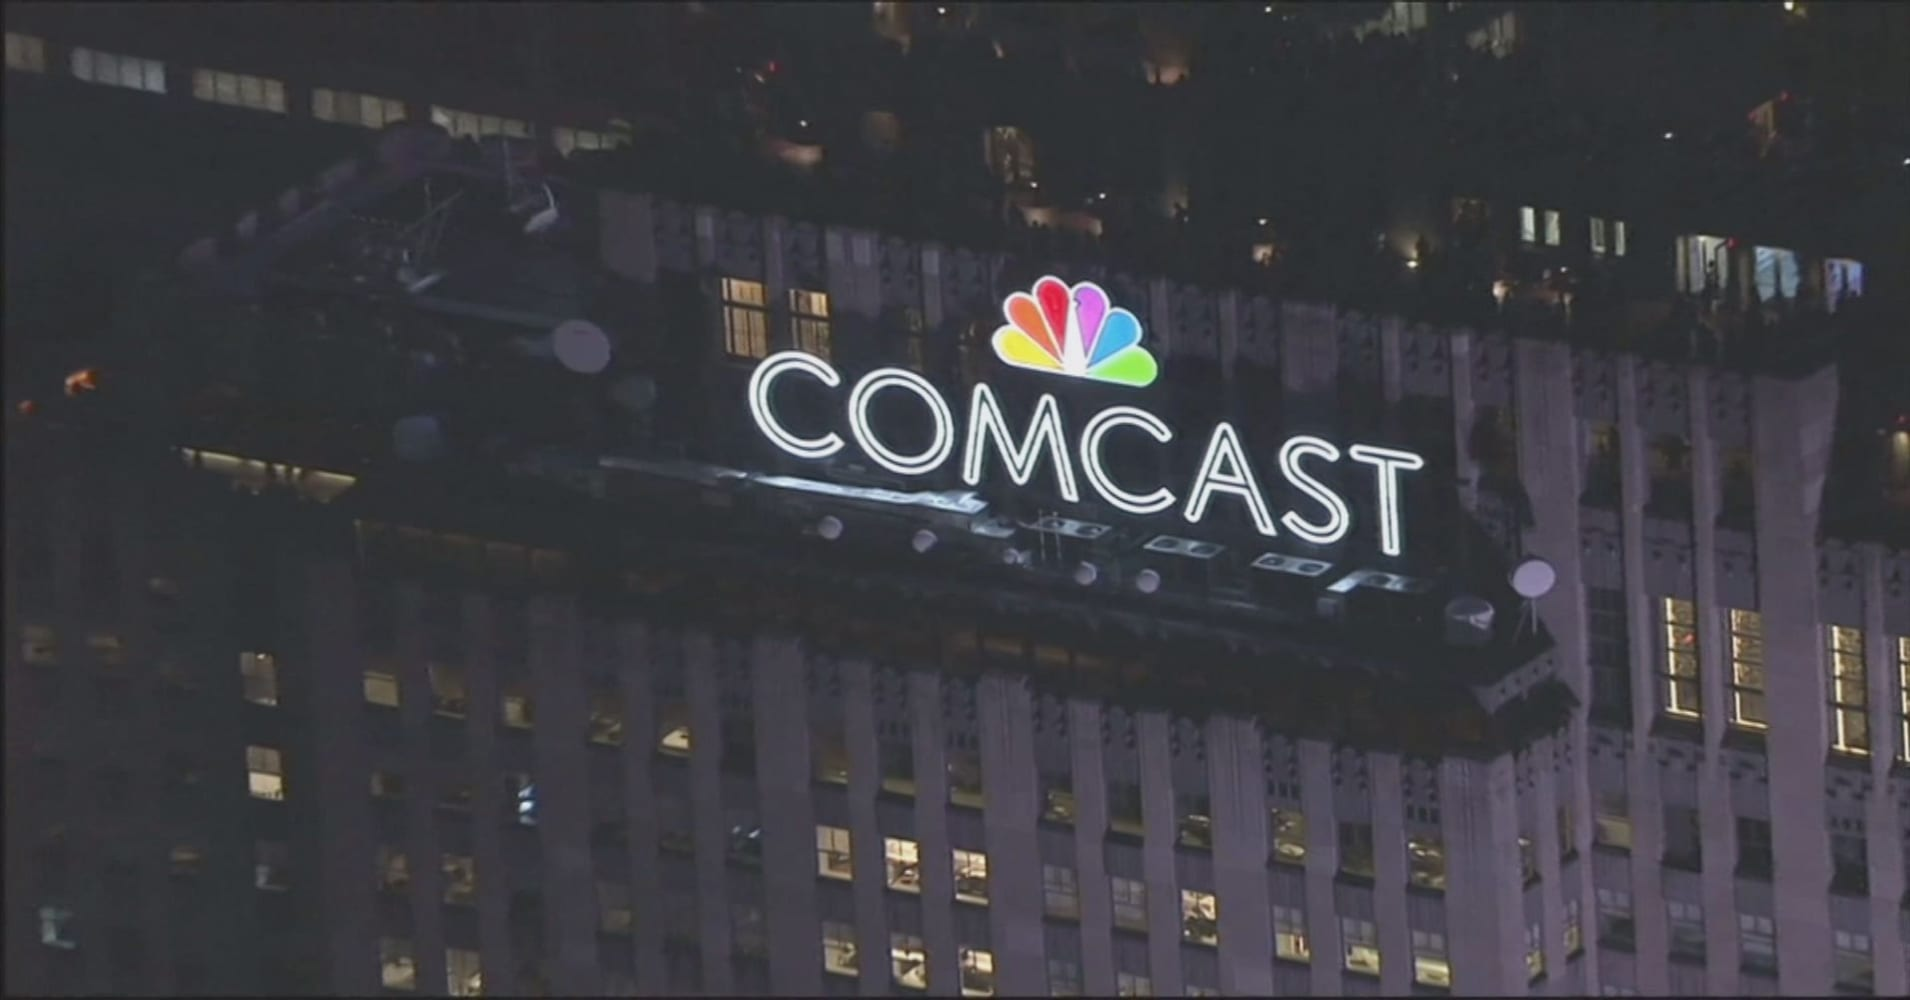 Comcast Quote New Comcast Shares Down On Subscriber Loss News